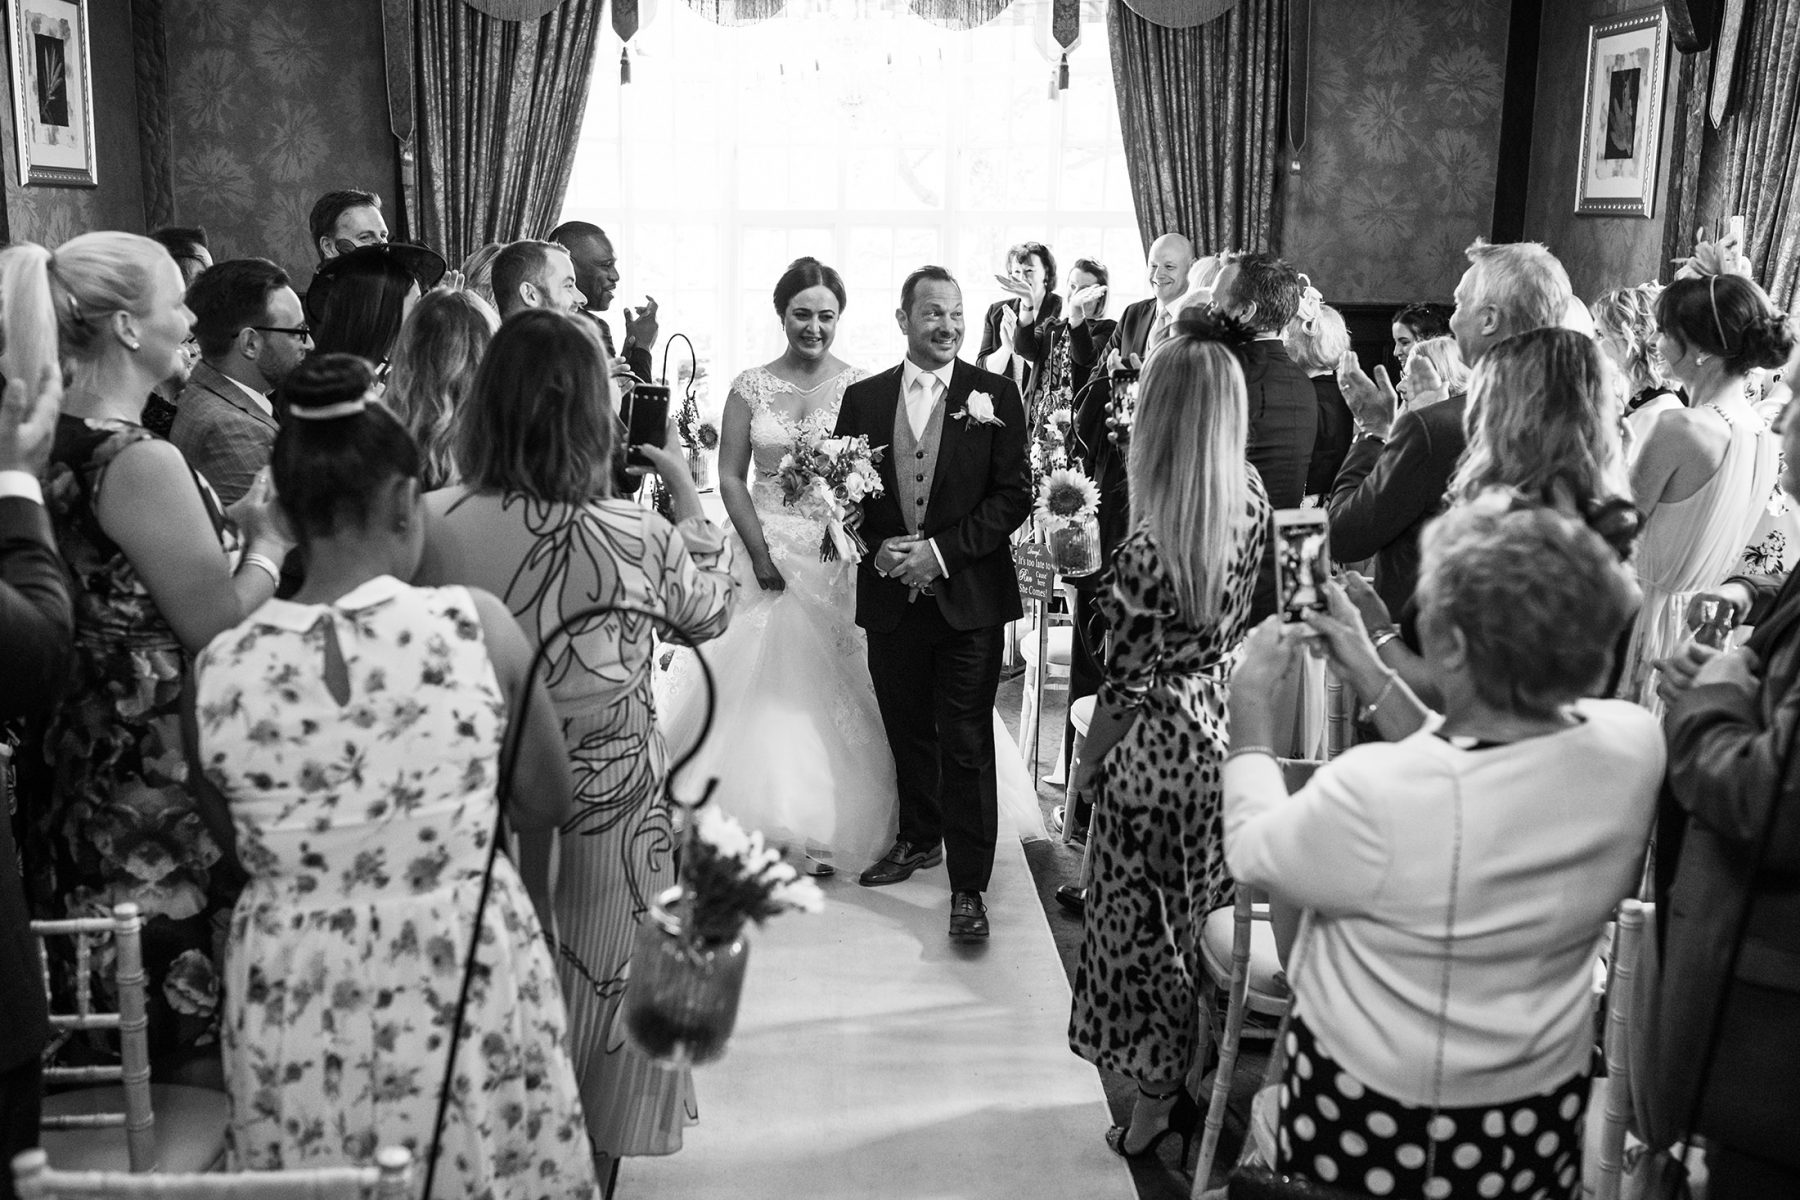 The bride and groom make their way back down the aisle after their wedding at Mere Court Hotel, a historic Knutsford Wedding Venues